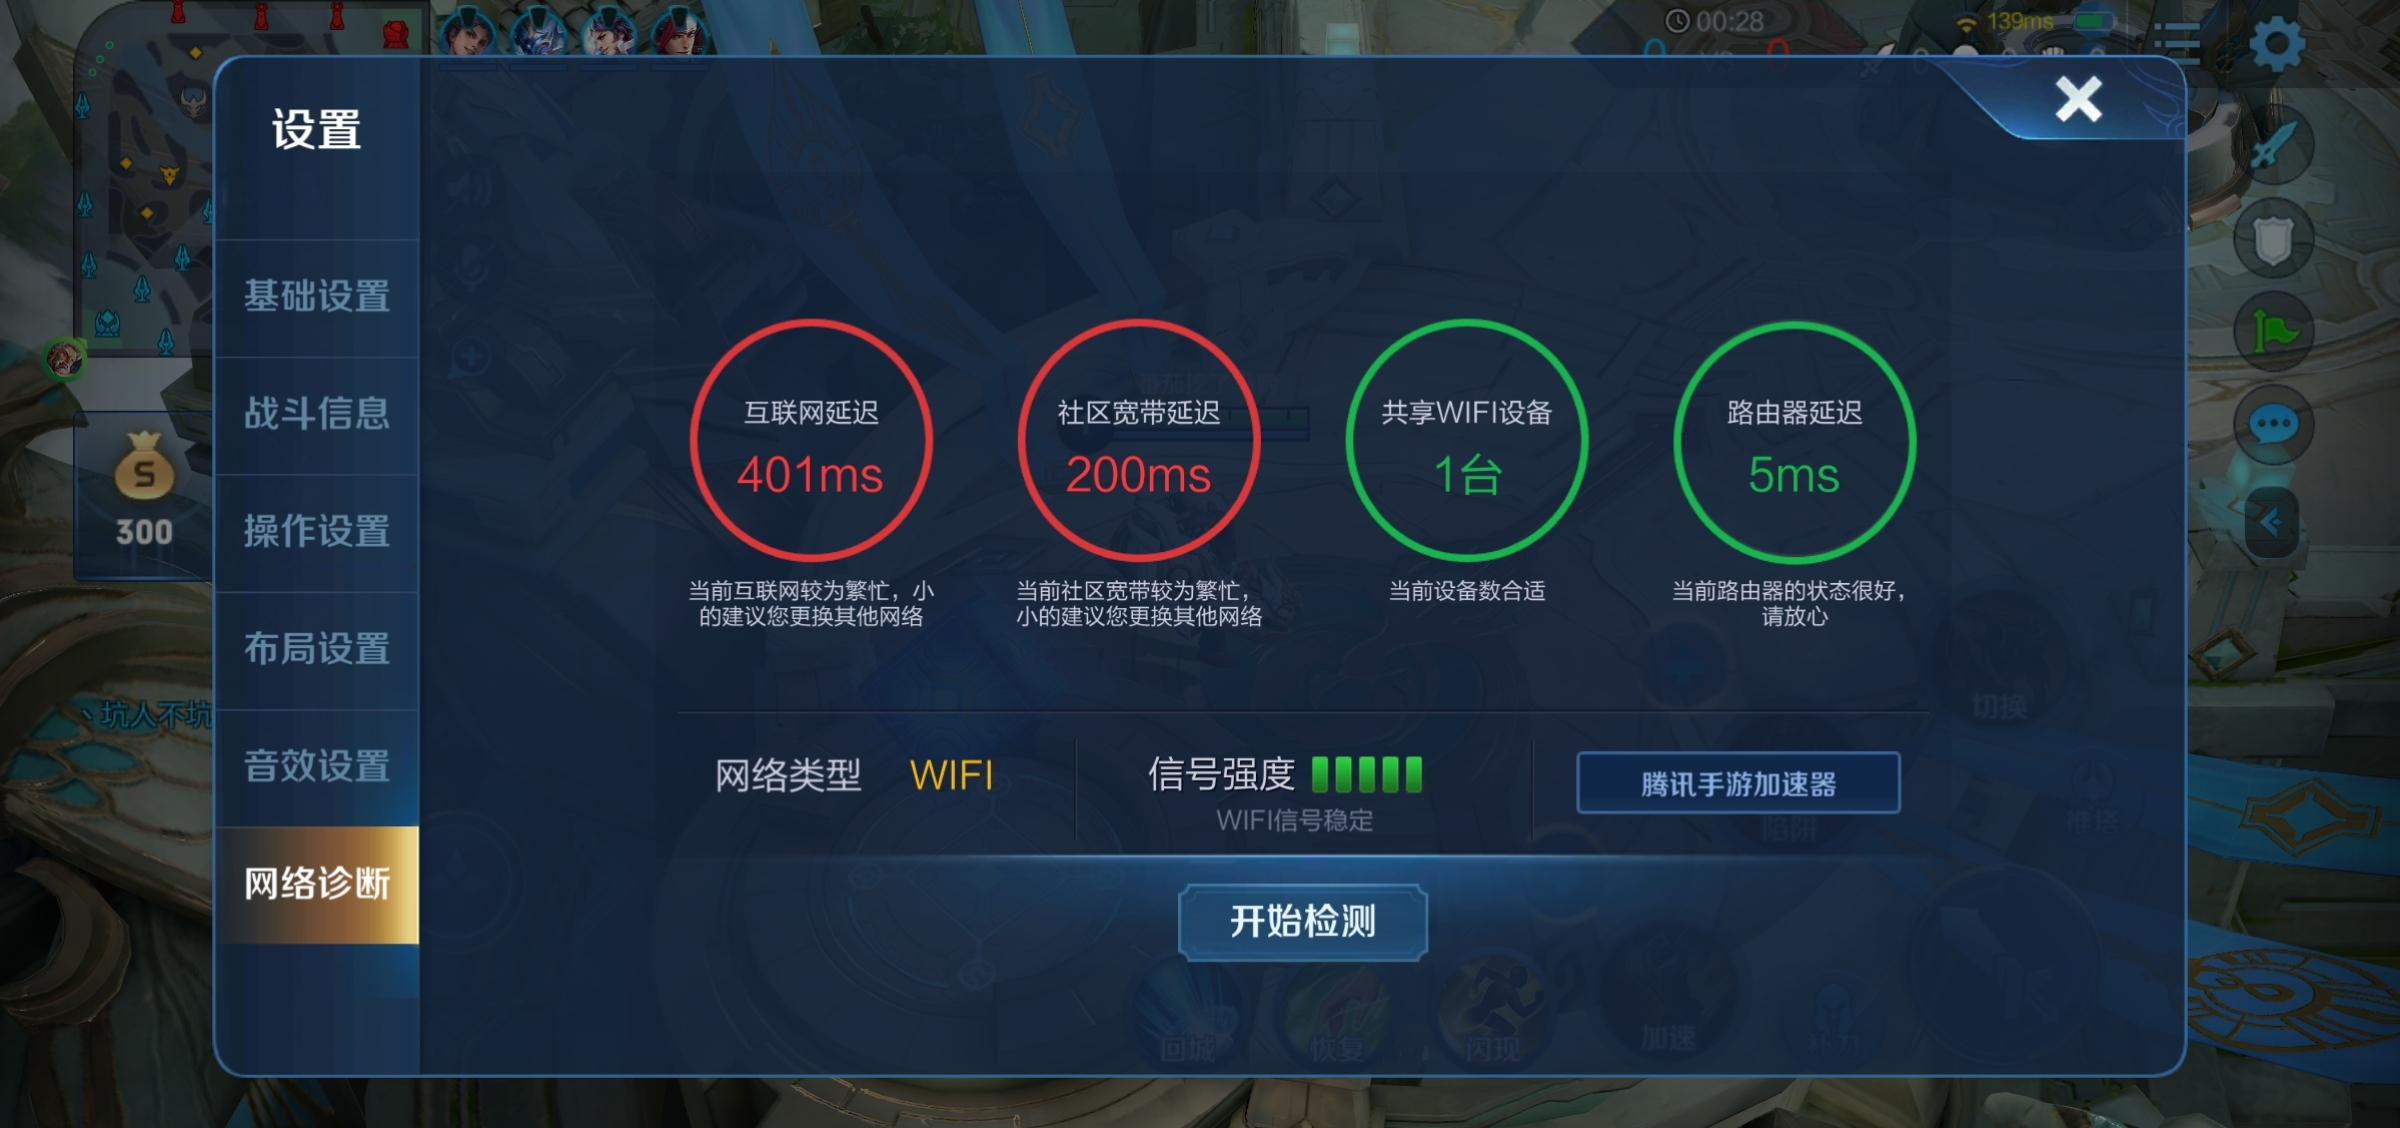 Screenshot_20200516_011834_com.tencent.tmgp.sgame.jpg